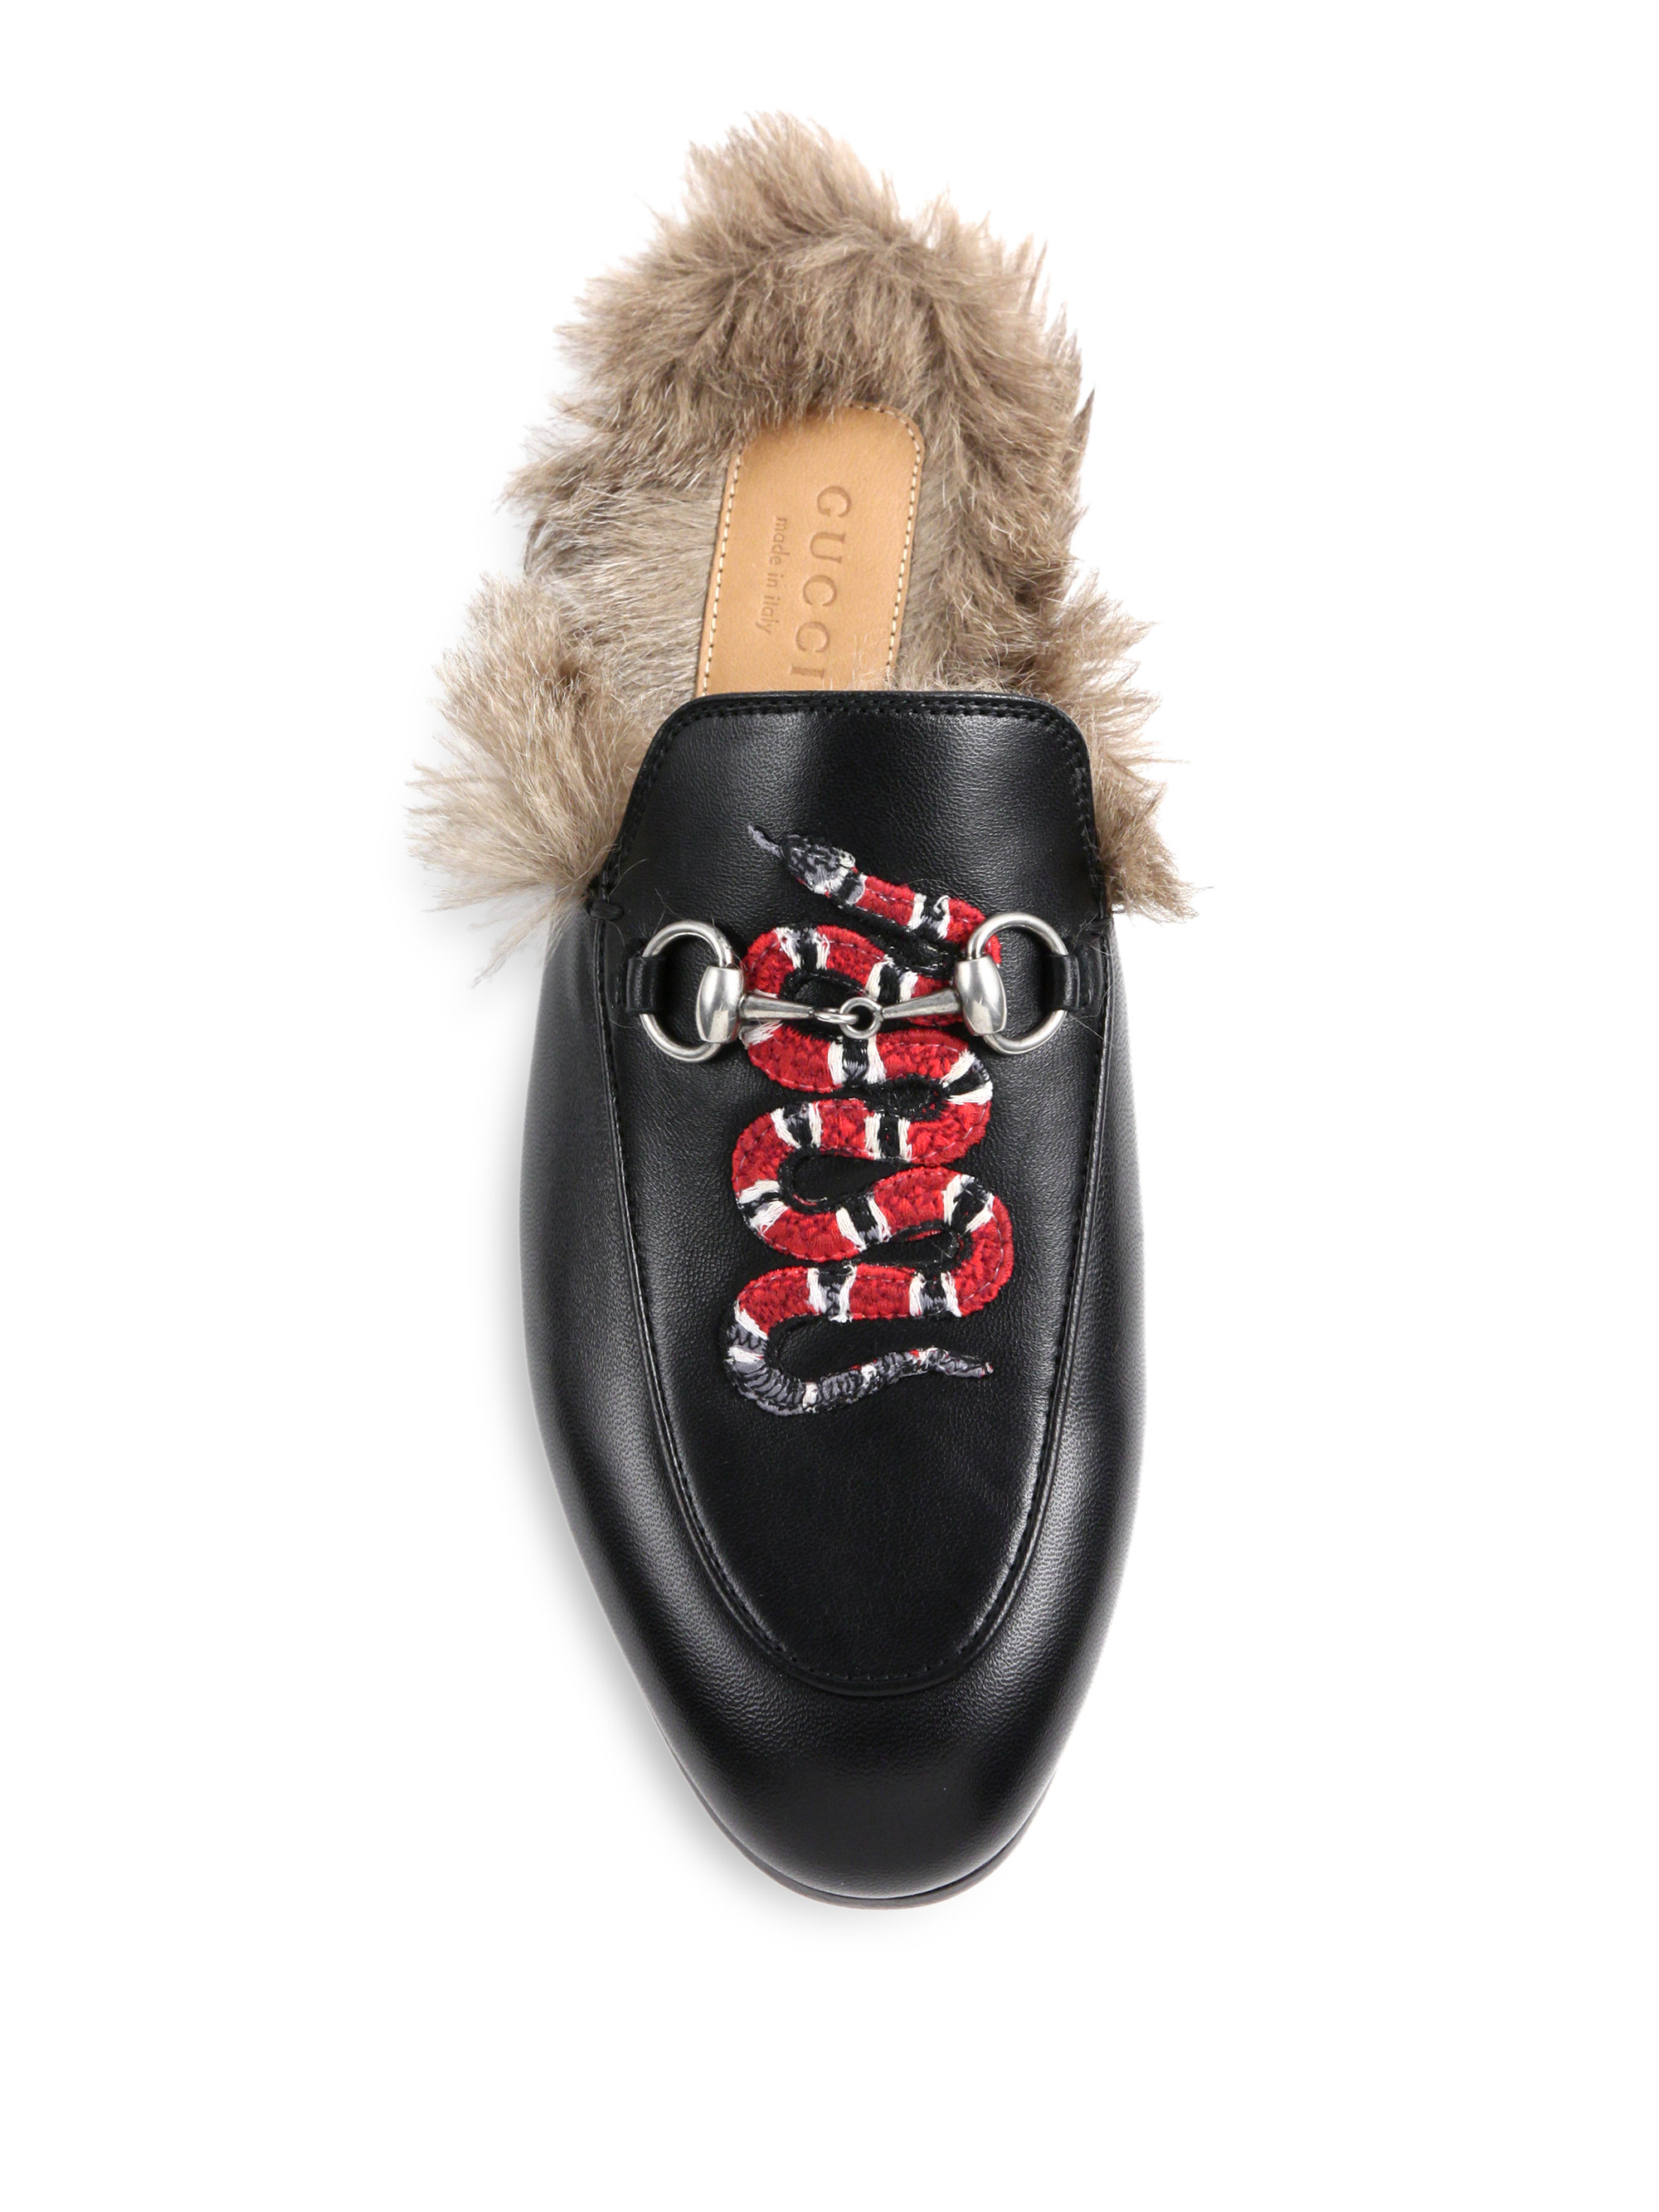 9ad31e0c6ae Lyst - Gucci Princetown Fur-lined Snake Leather Slippers in Black